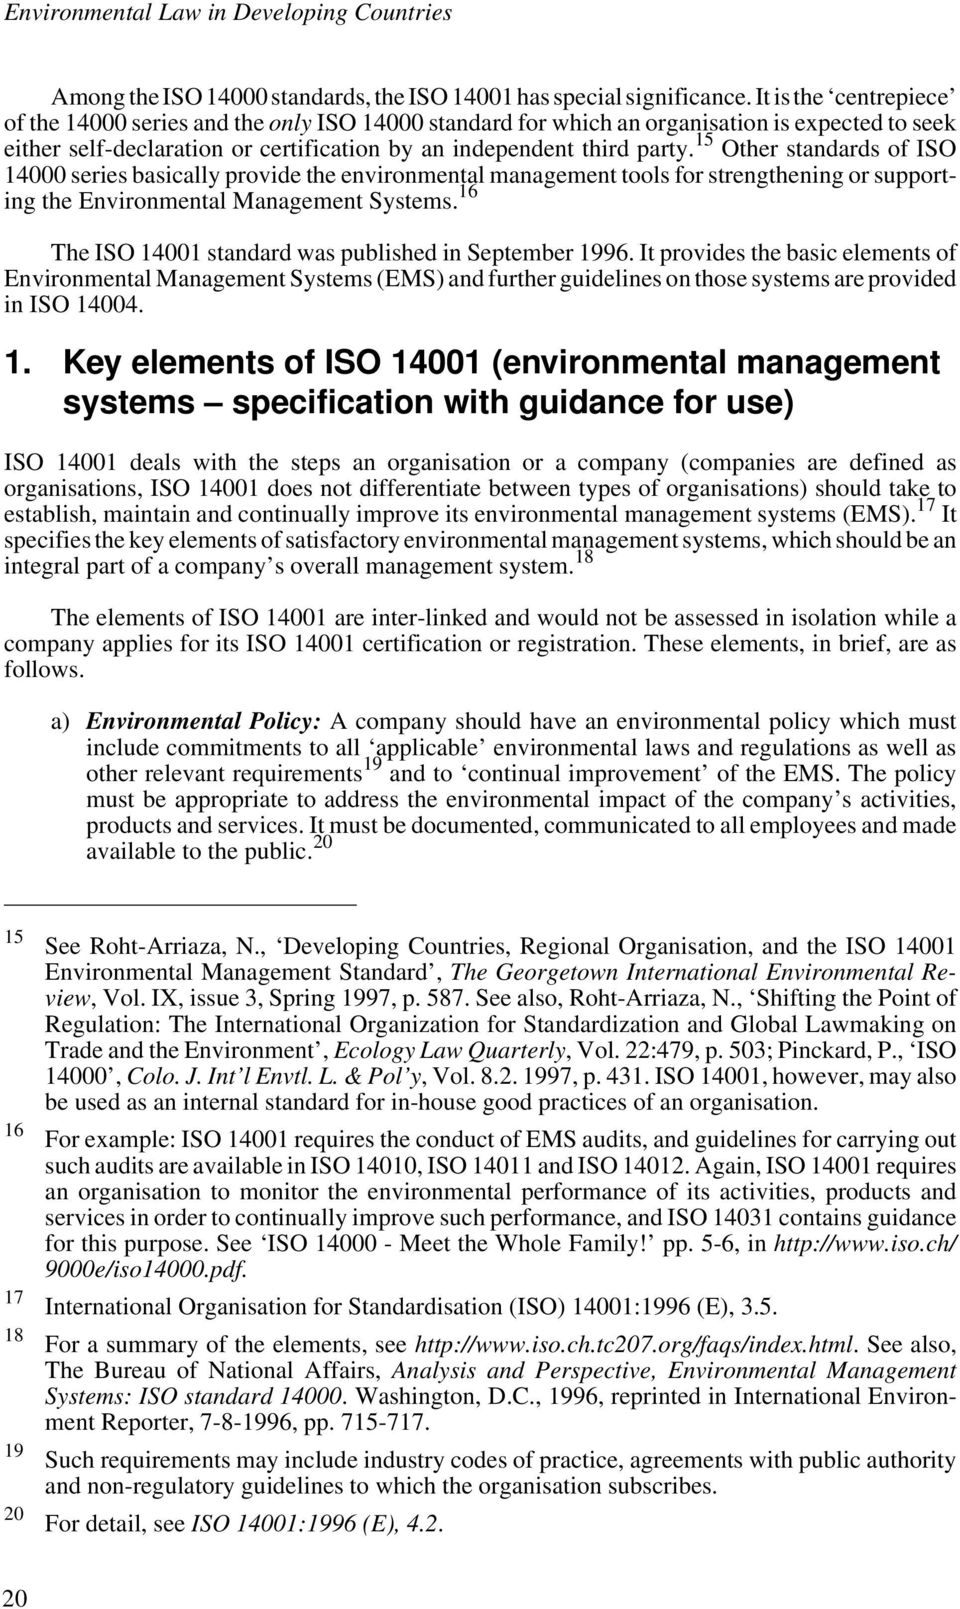 15 Other standards of ISO 14000 series basically provide the environmental management tools for strengthening or supporting the Environmental Management Systems.